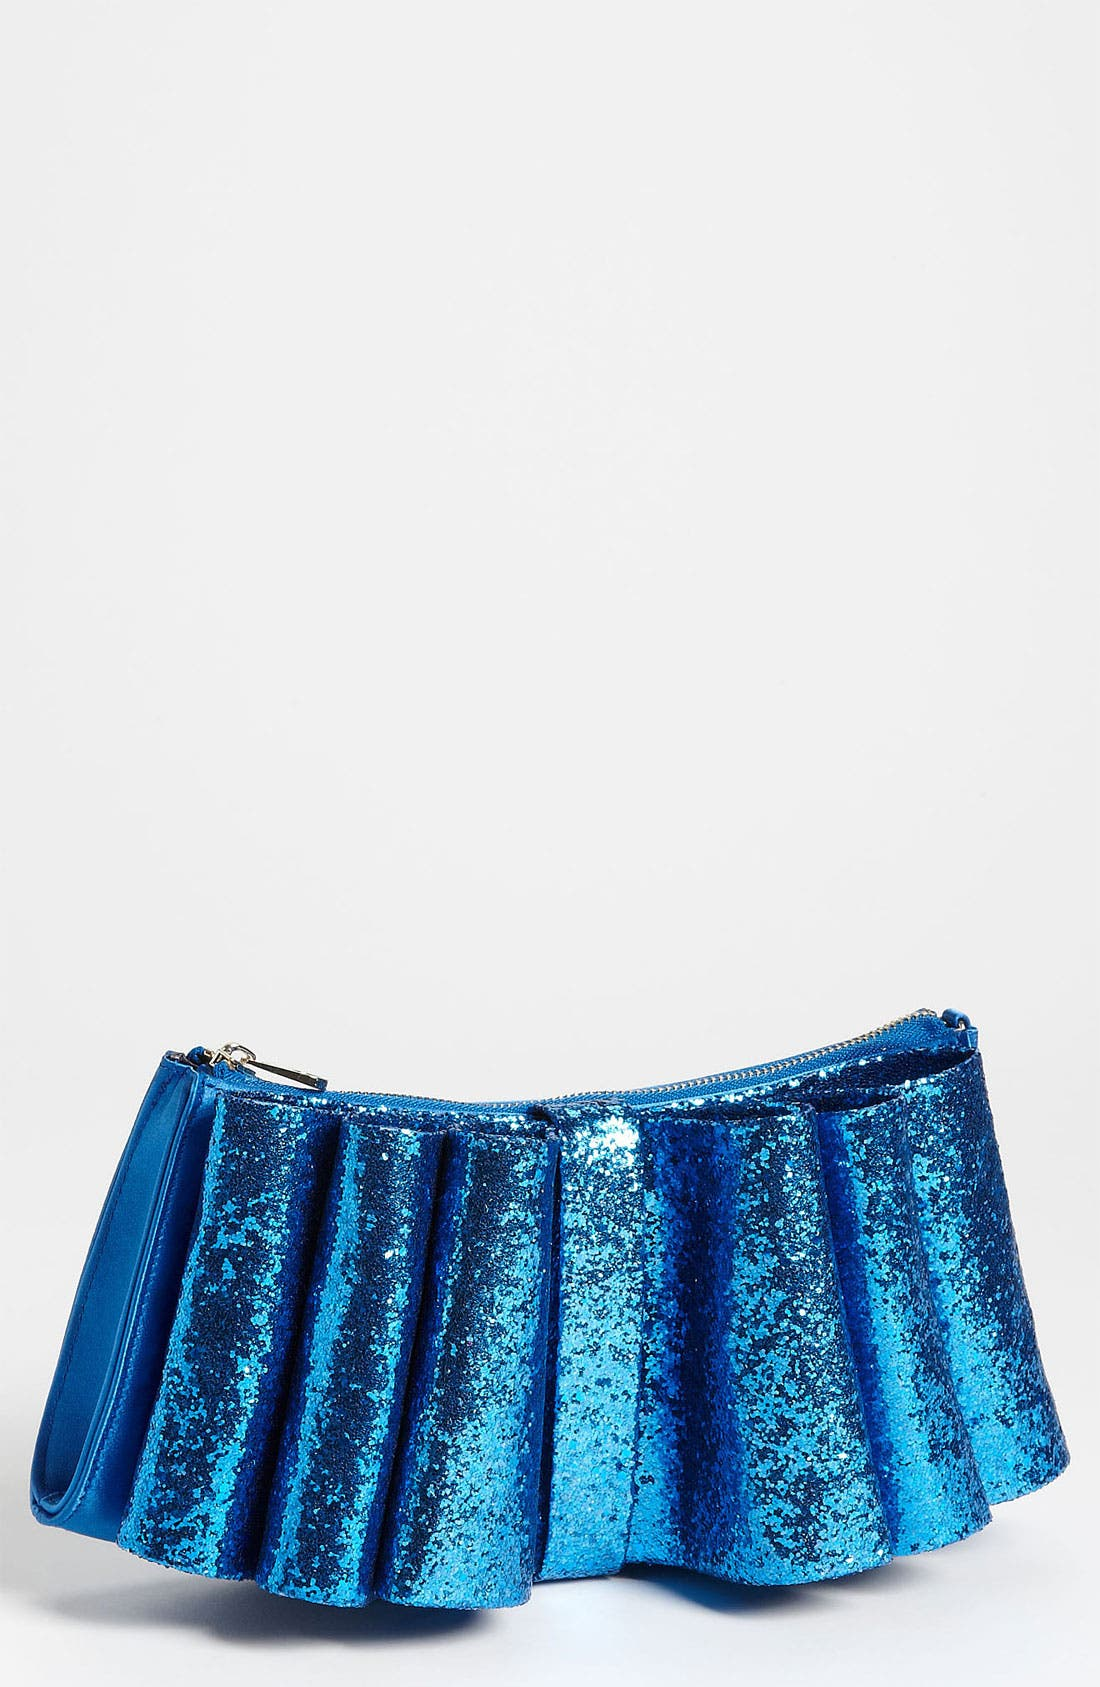 Alternate Image 1 Selected - Ted Baker London 'Bowden' Clutch